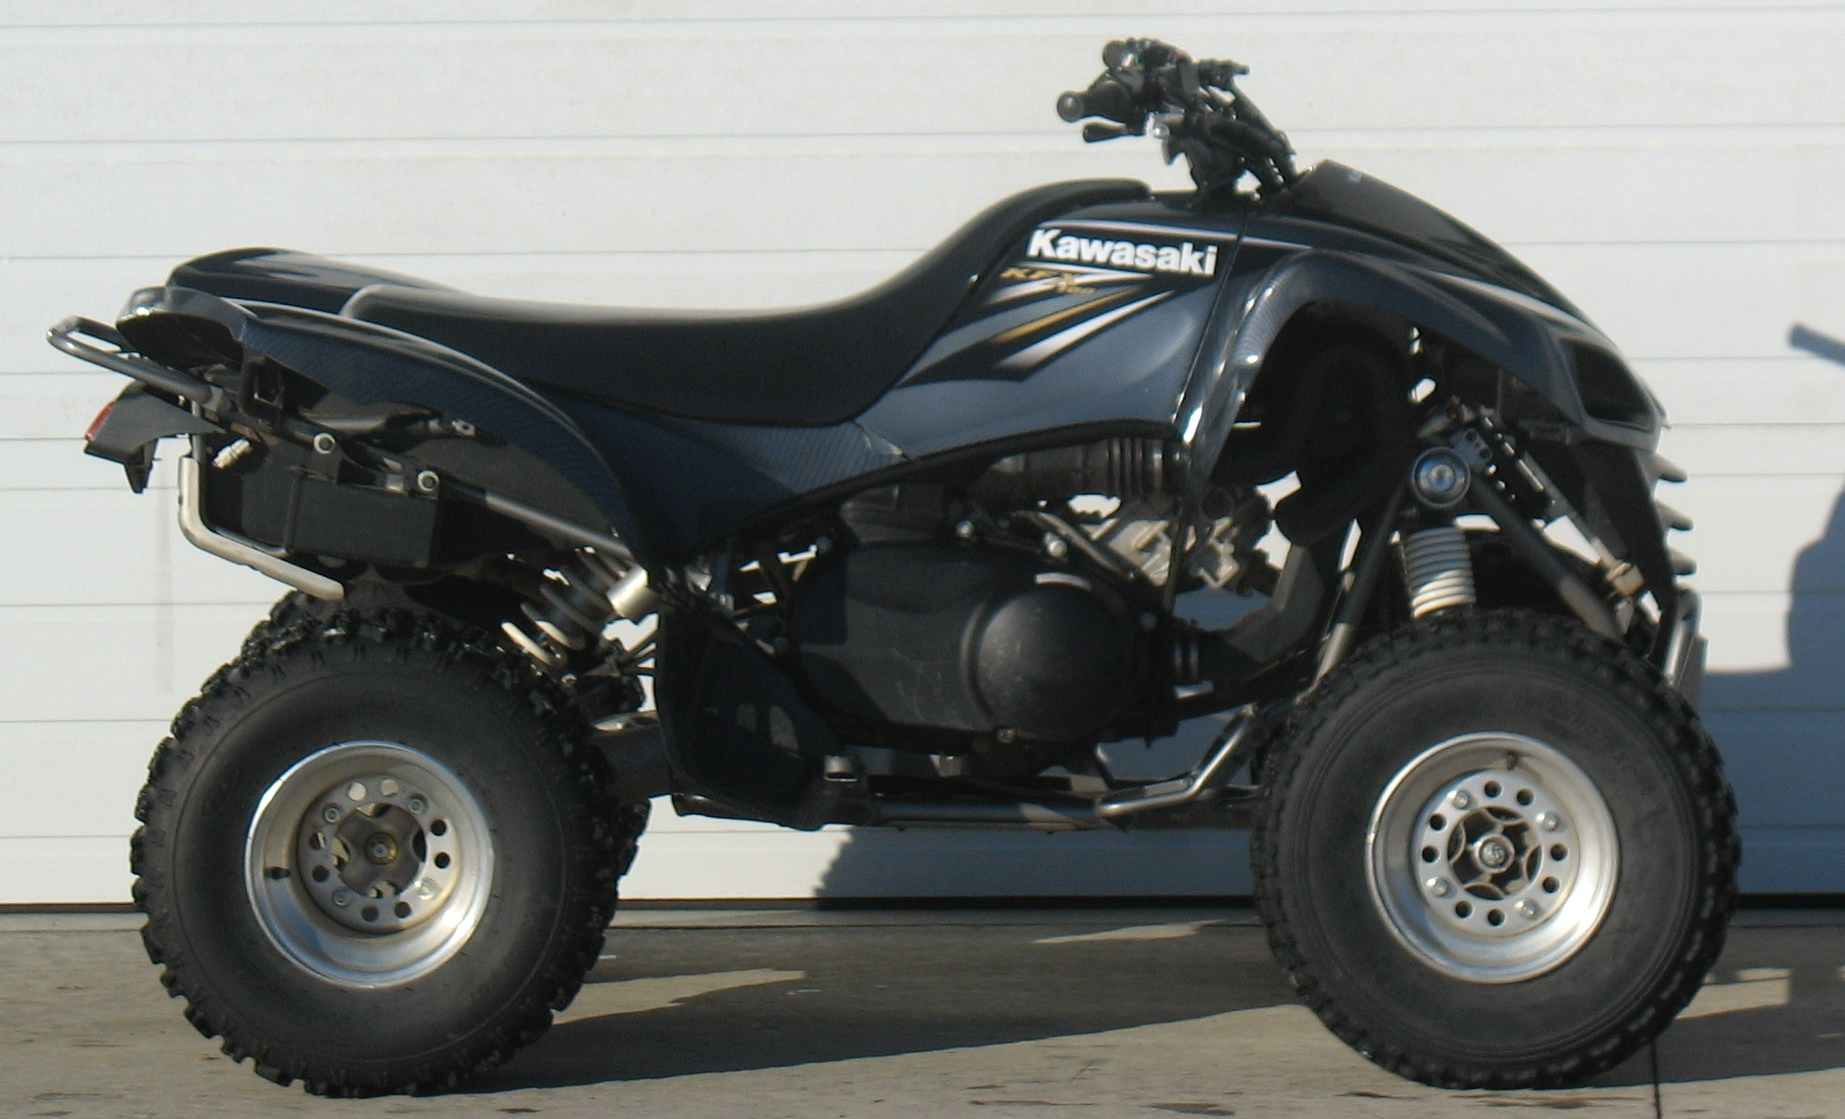 power brokers of the black hills. -- helping powersports buyers